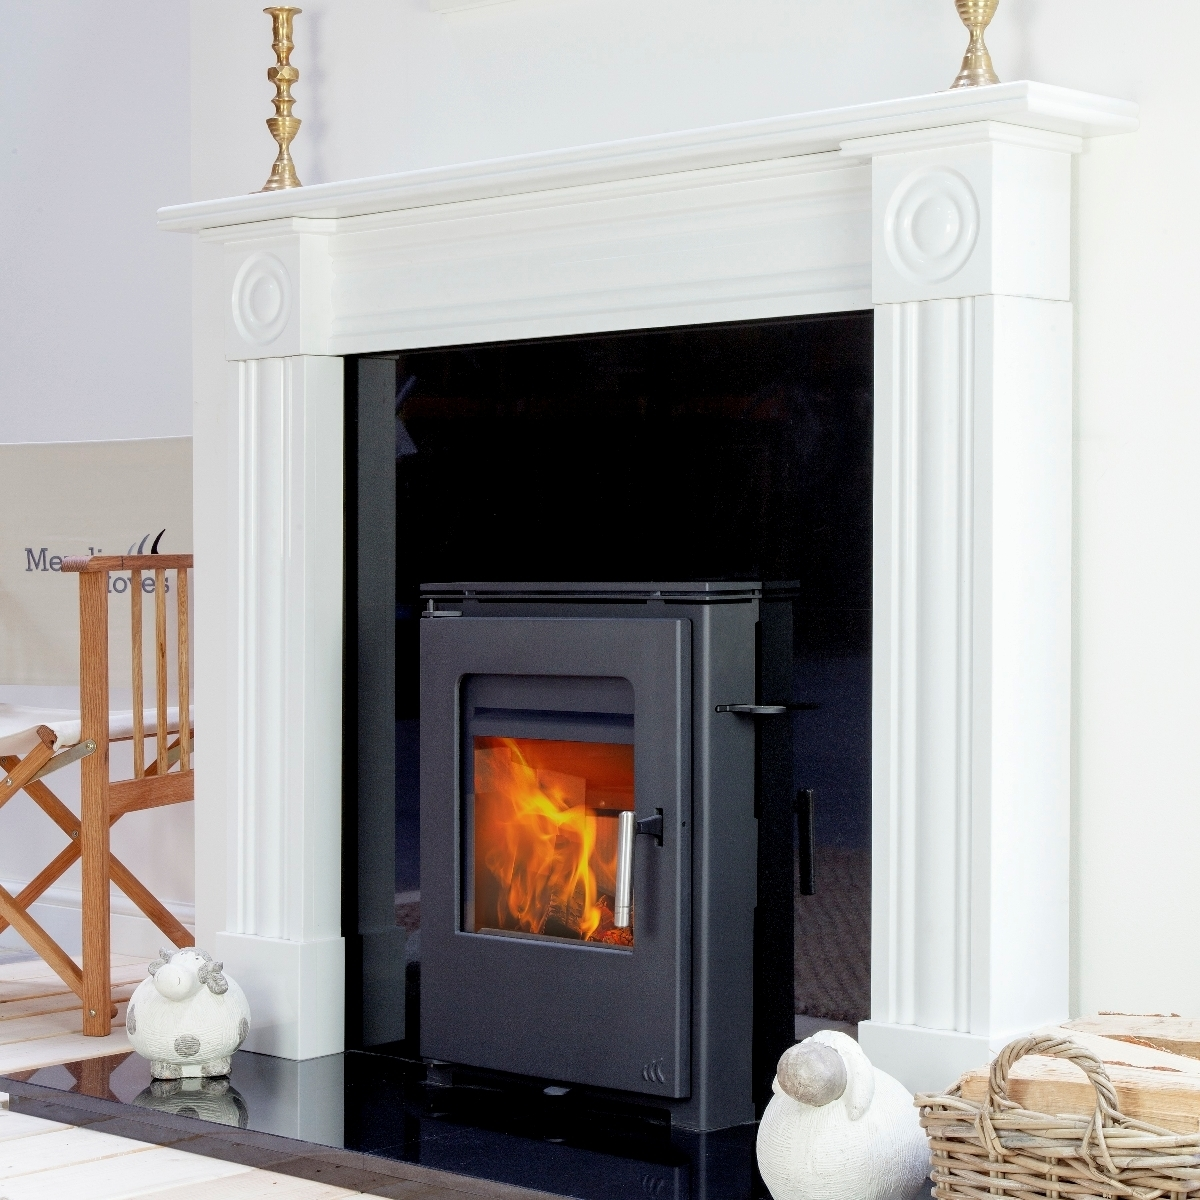 Burcott Inset Convection Multi Fuel And Wood Burning Stove